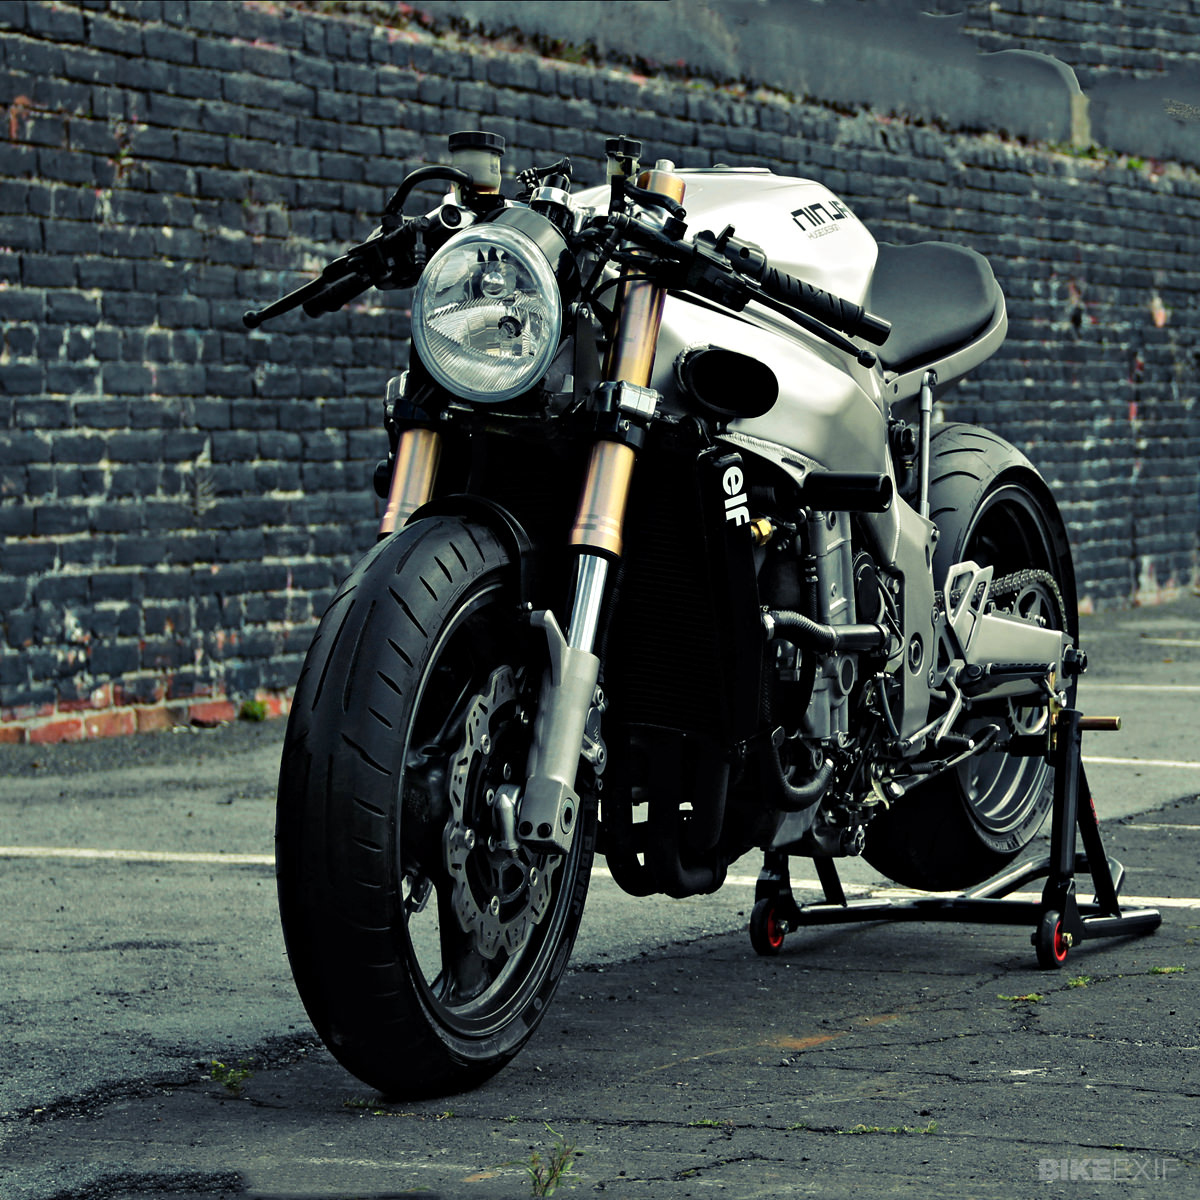 zx7 cafe racer